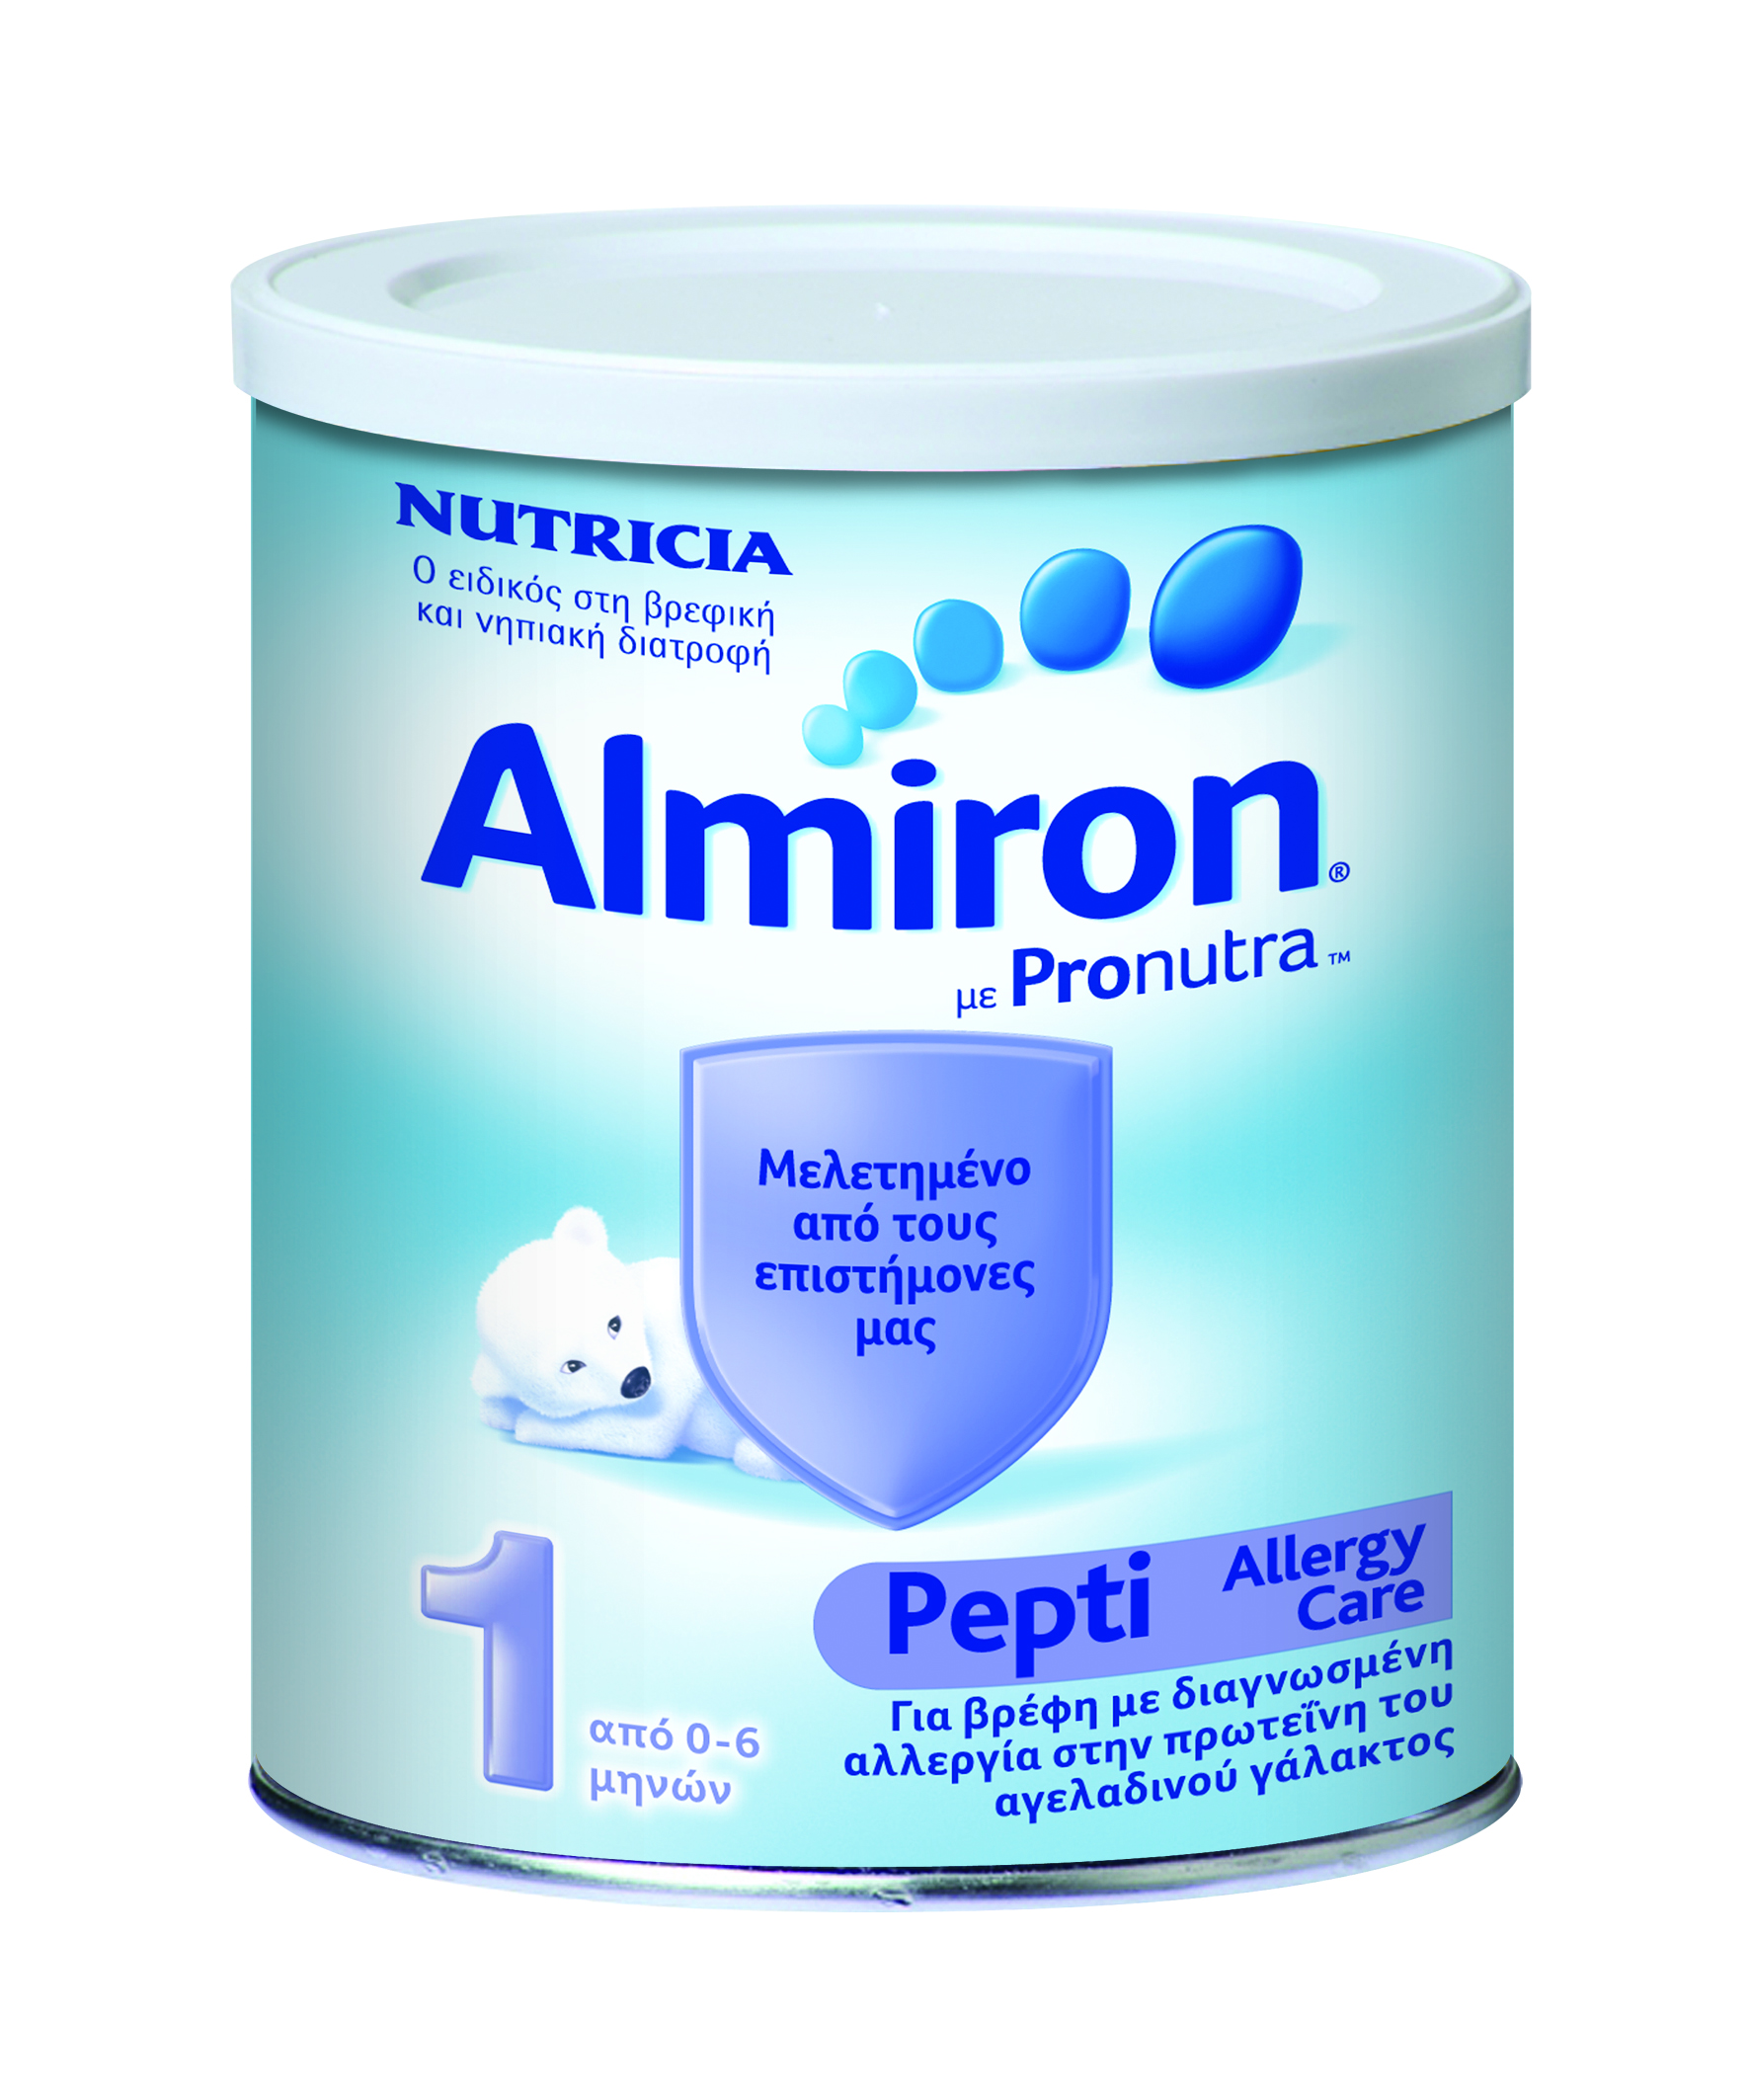 Nutricia Almiron Pepti Αllergy Care1, 450g (0-6 μηνών)